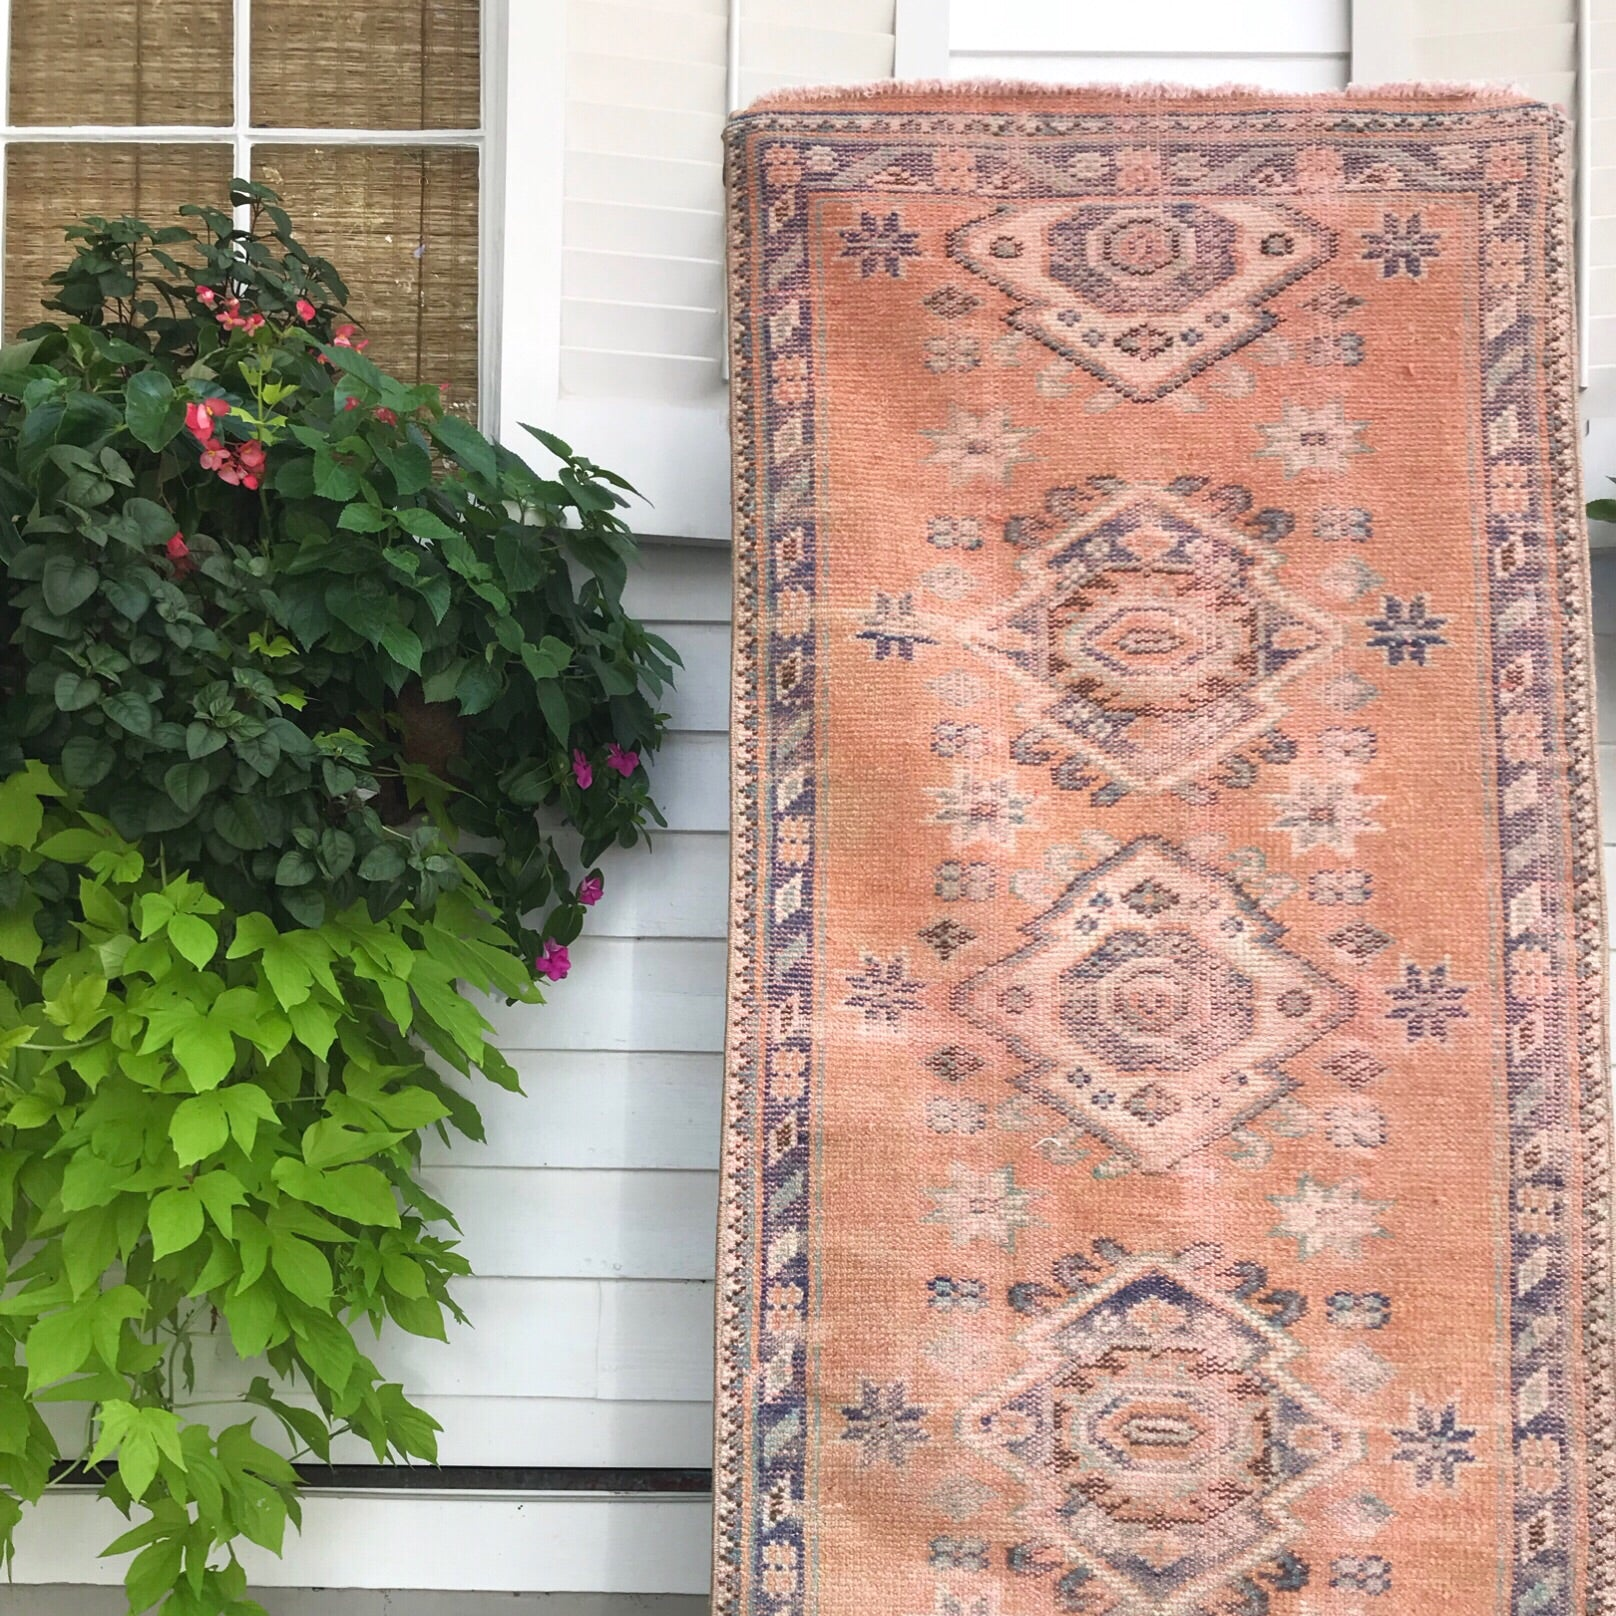 This vintage Uşak Turkish runner is an amazing peachy orange with vibrant blue, purple, and even pink accents!  2'5x12'8